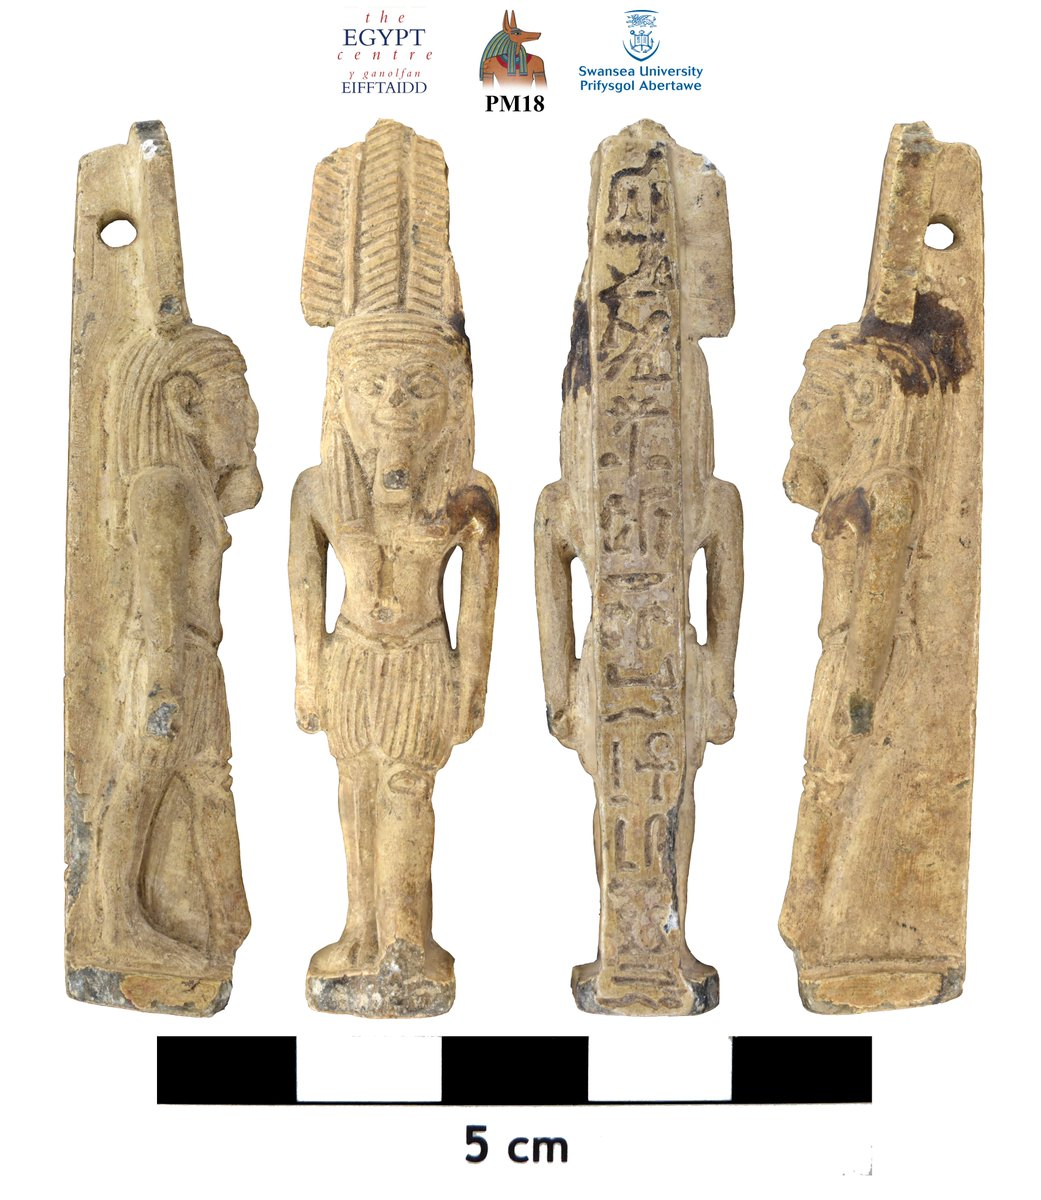 As frustrating as it is to photograph amulets given their small size, focus stacking helps to produce beautifully detailed images. Here are four examples in @TheEgyptCentre collection, including a rare one of Sopdu-Hor (PM18), Nephthys (LIH11), Min (PM16), and Mut (PM20). https://t.co/LfSTRSezOC